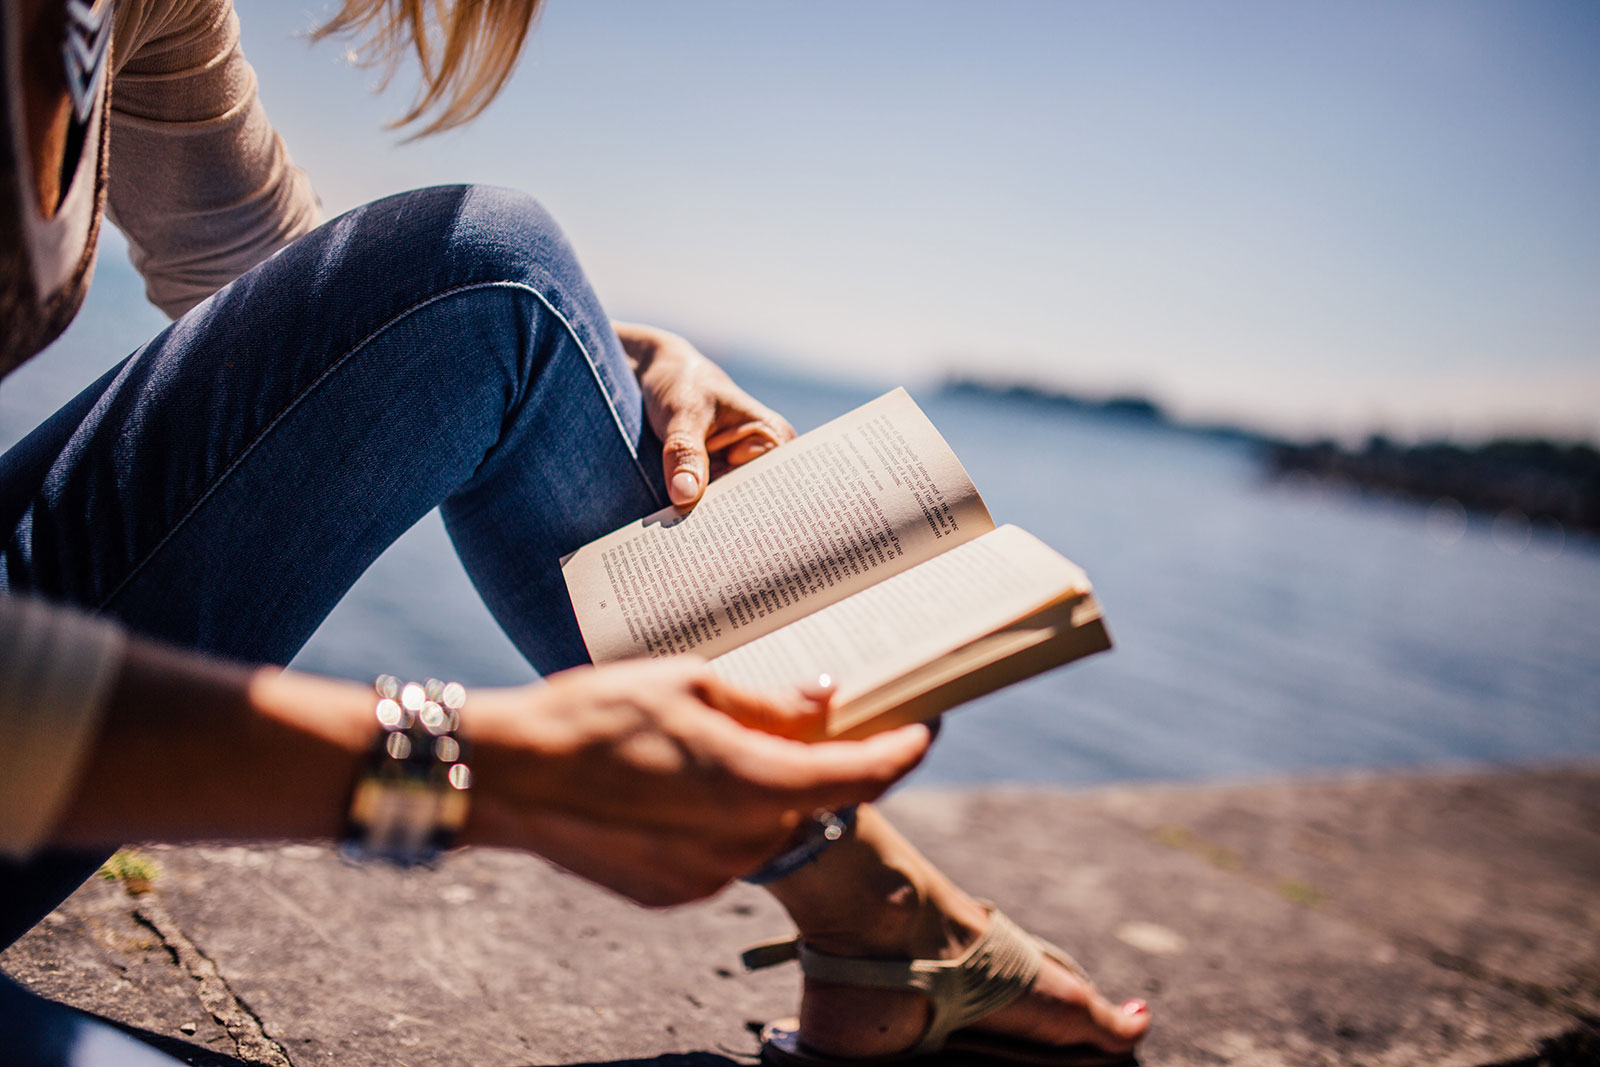 5 books that made me a little bit better person